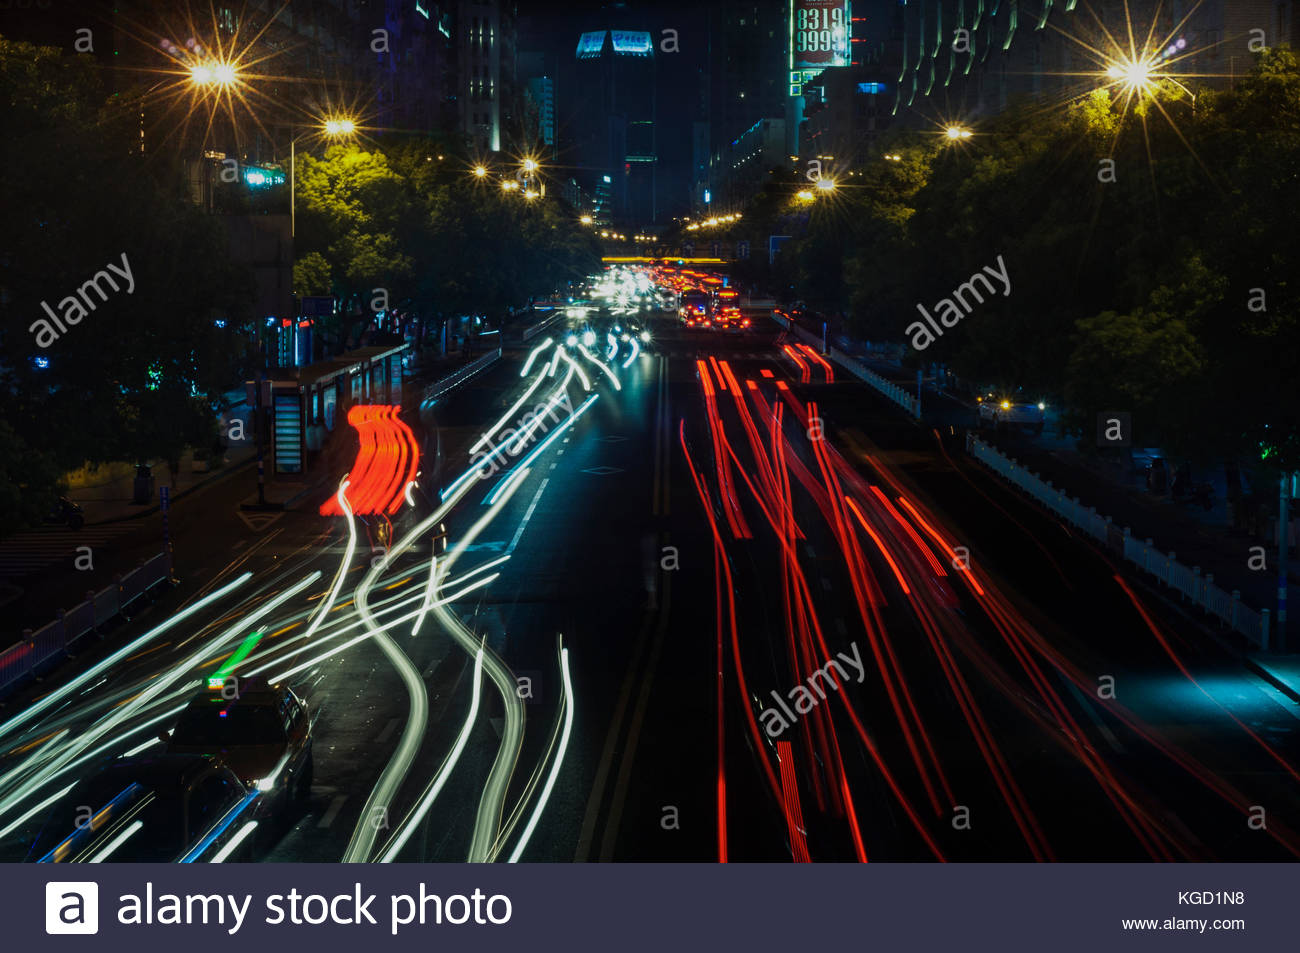 Chaotic traffic - Stock Image